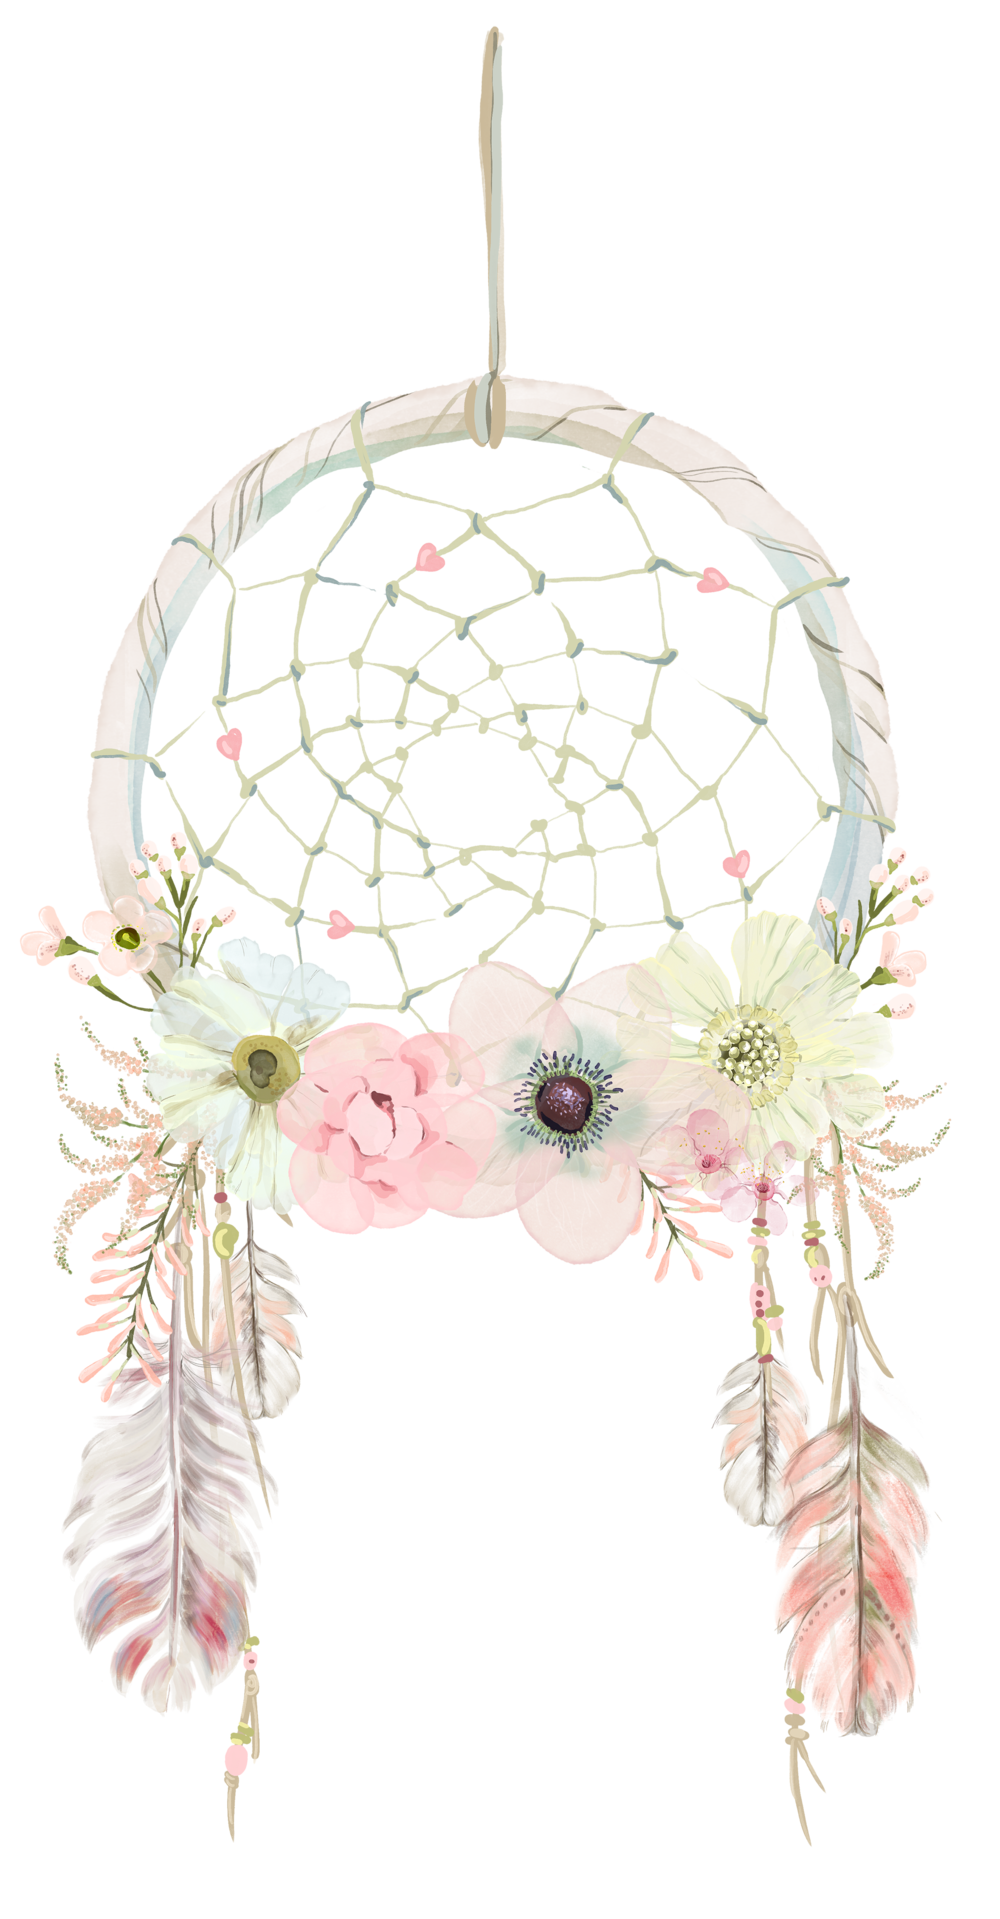 Dreamcatcher clipart. Dream catcher saferbrowser yahoo